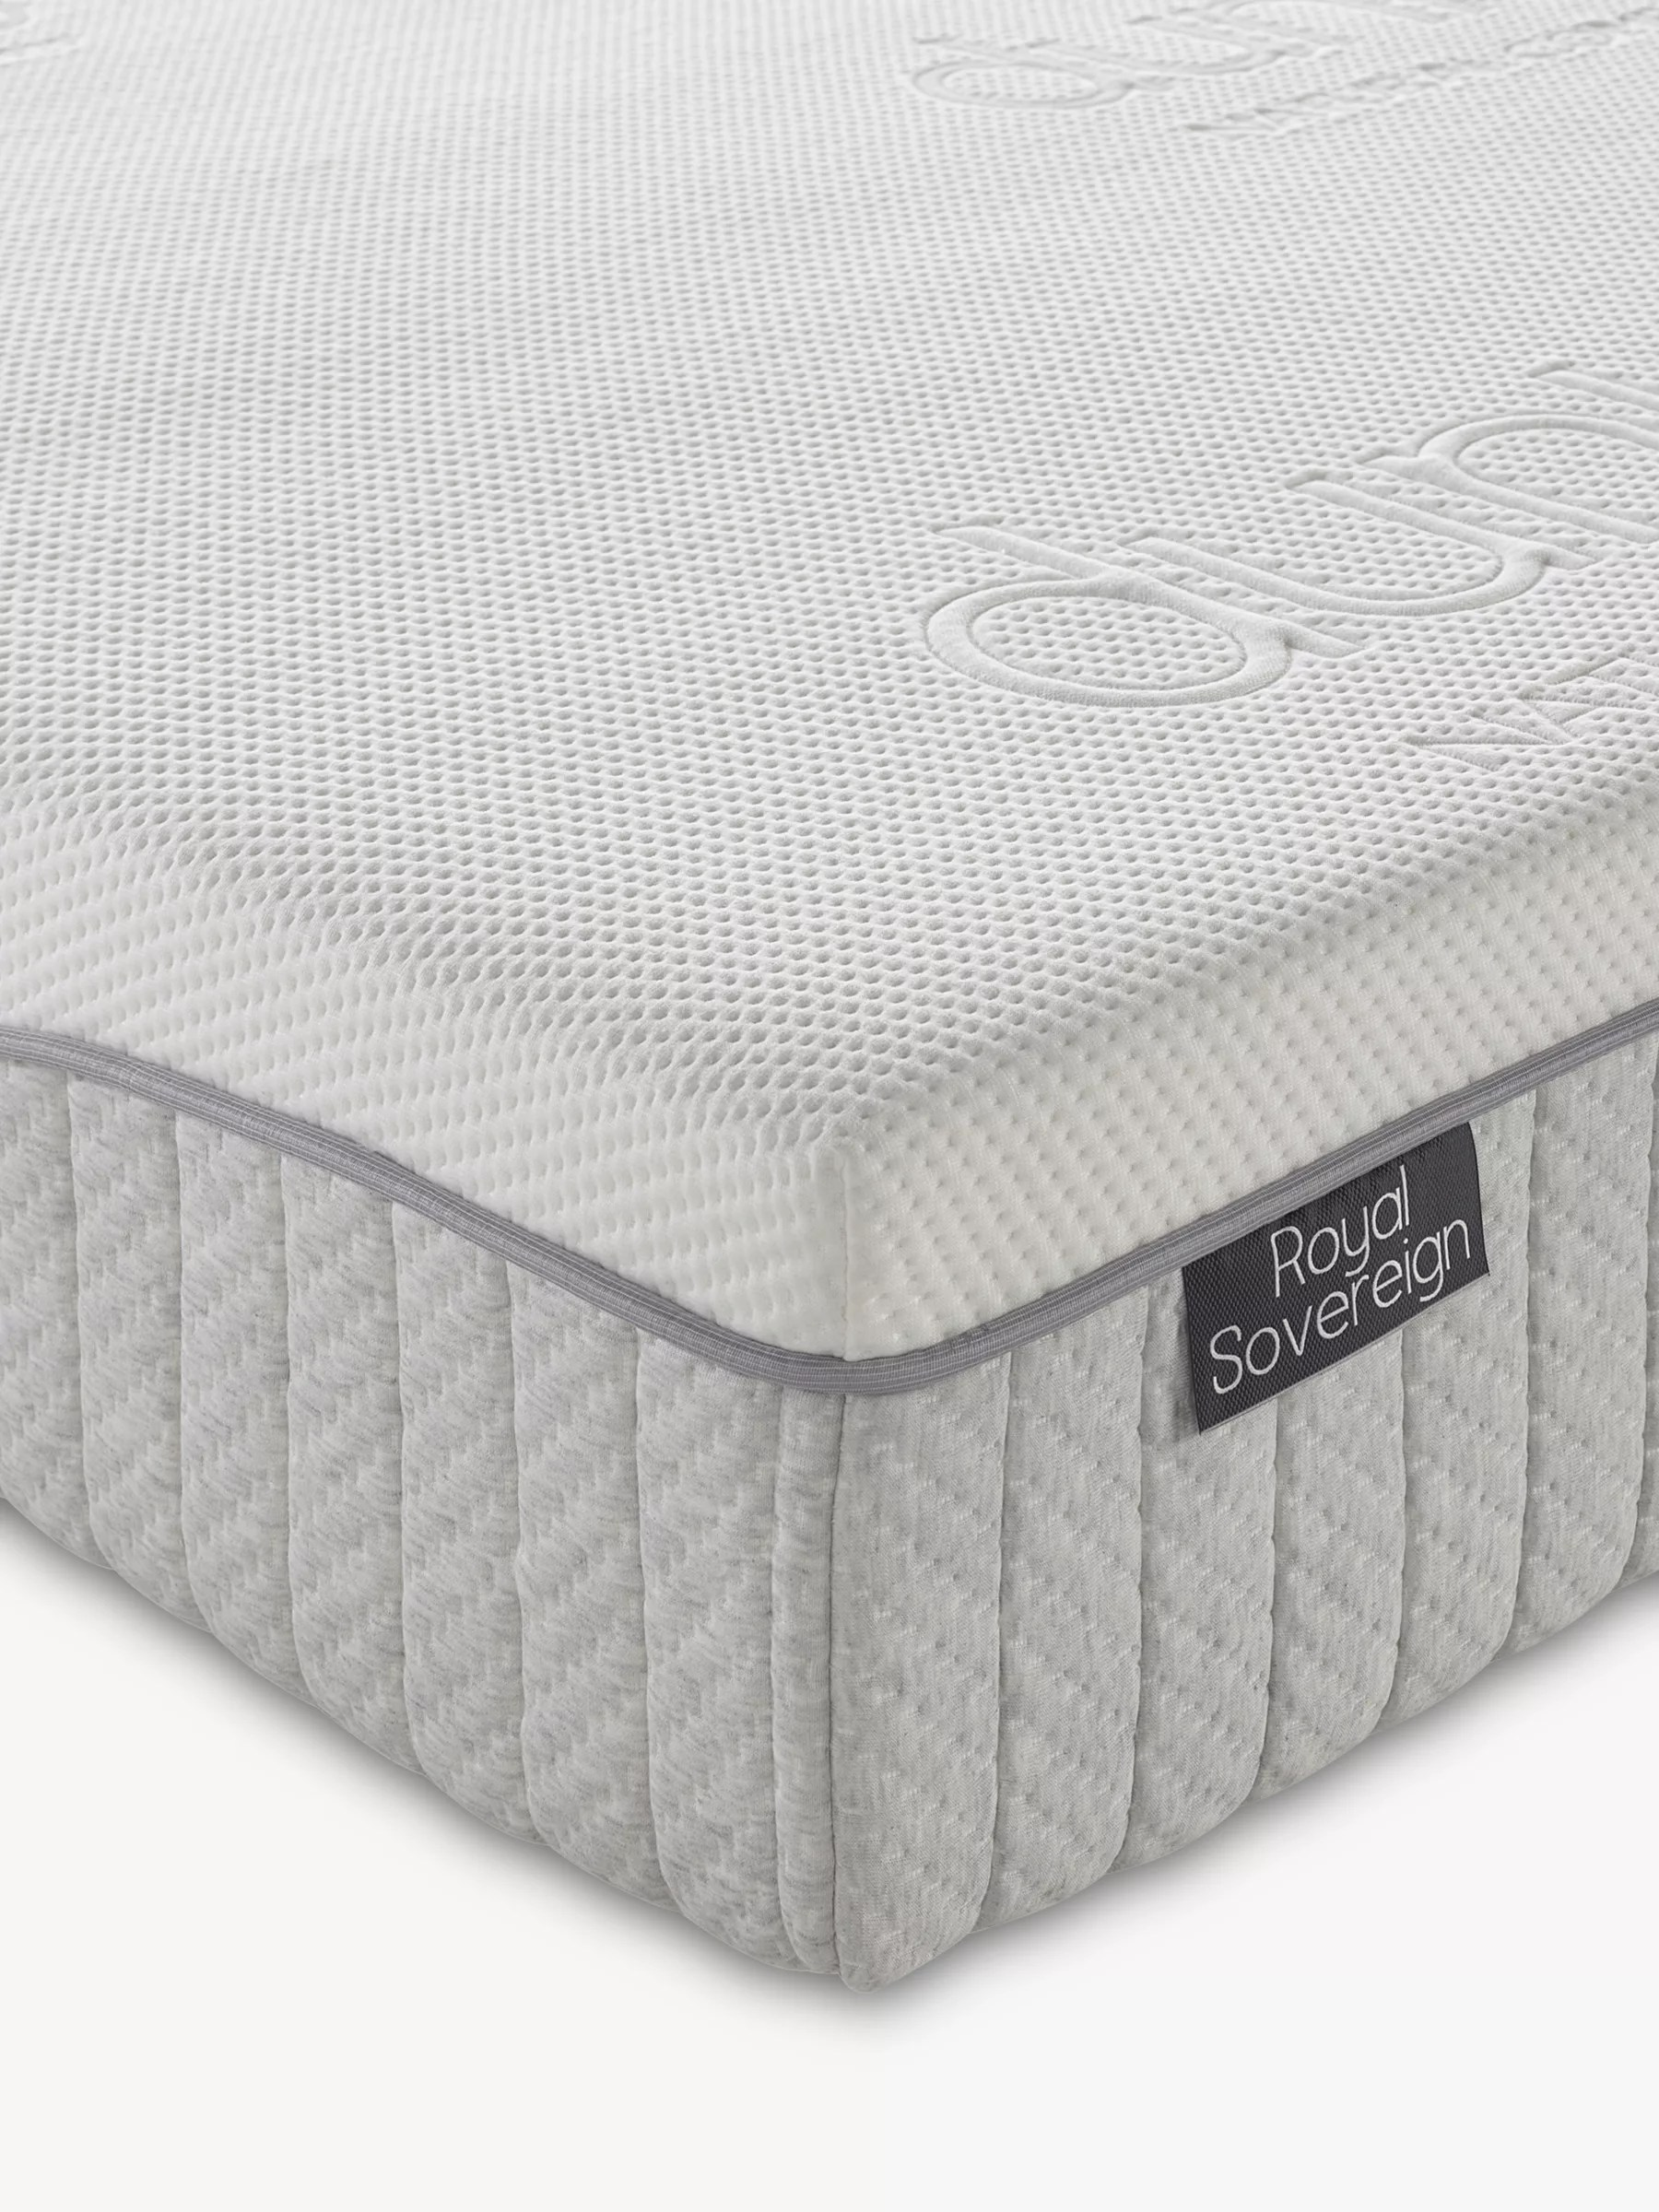 Long Single Bed Dunlopillo Royal Sovereign Latex Mattress Medium Small Long Single